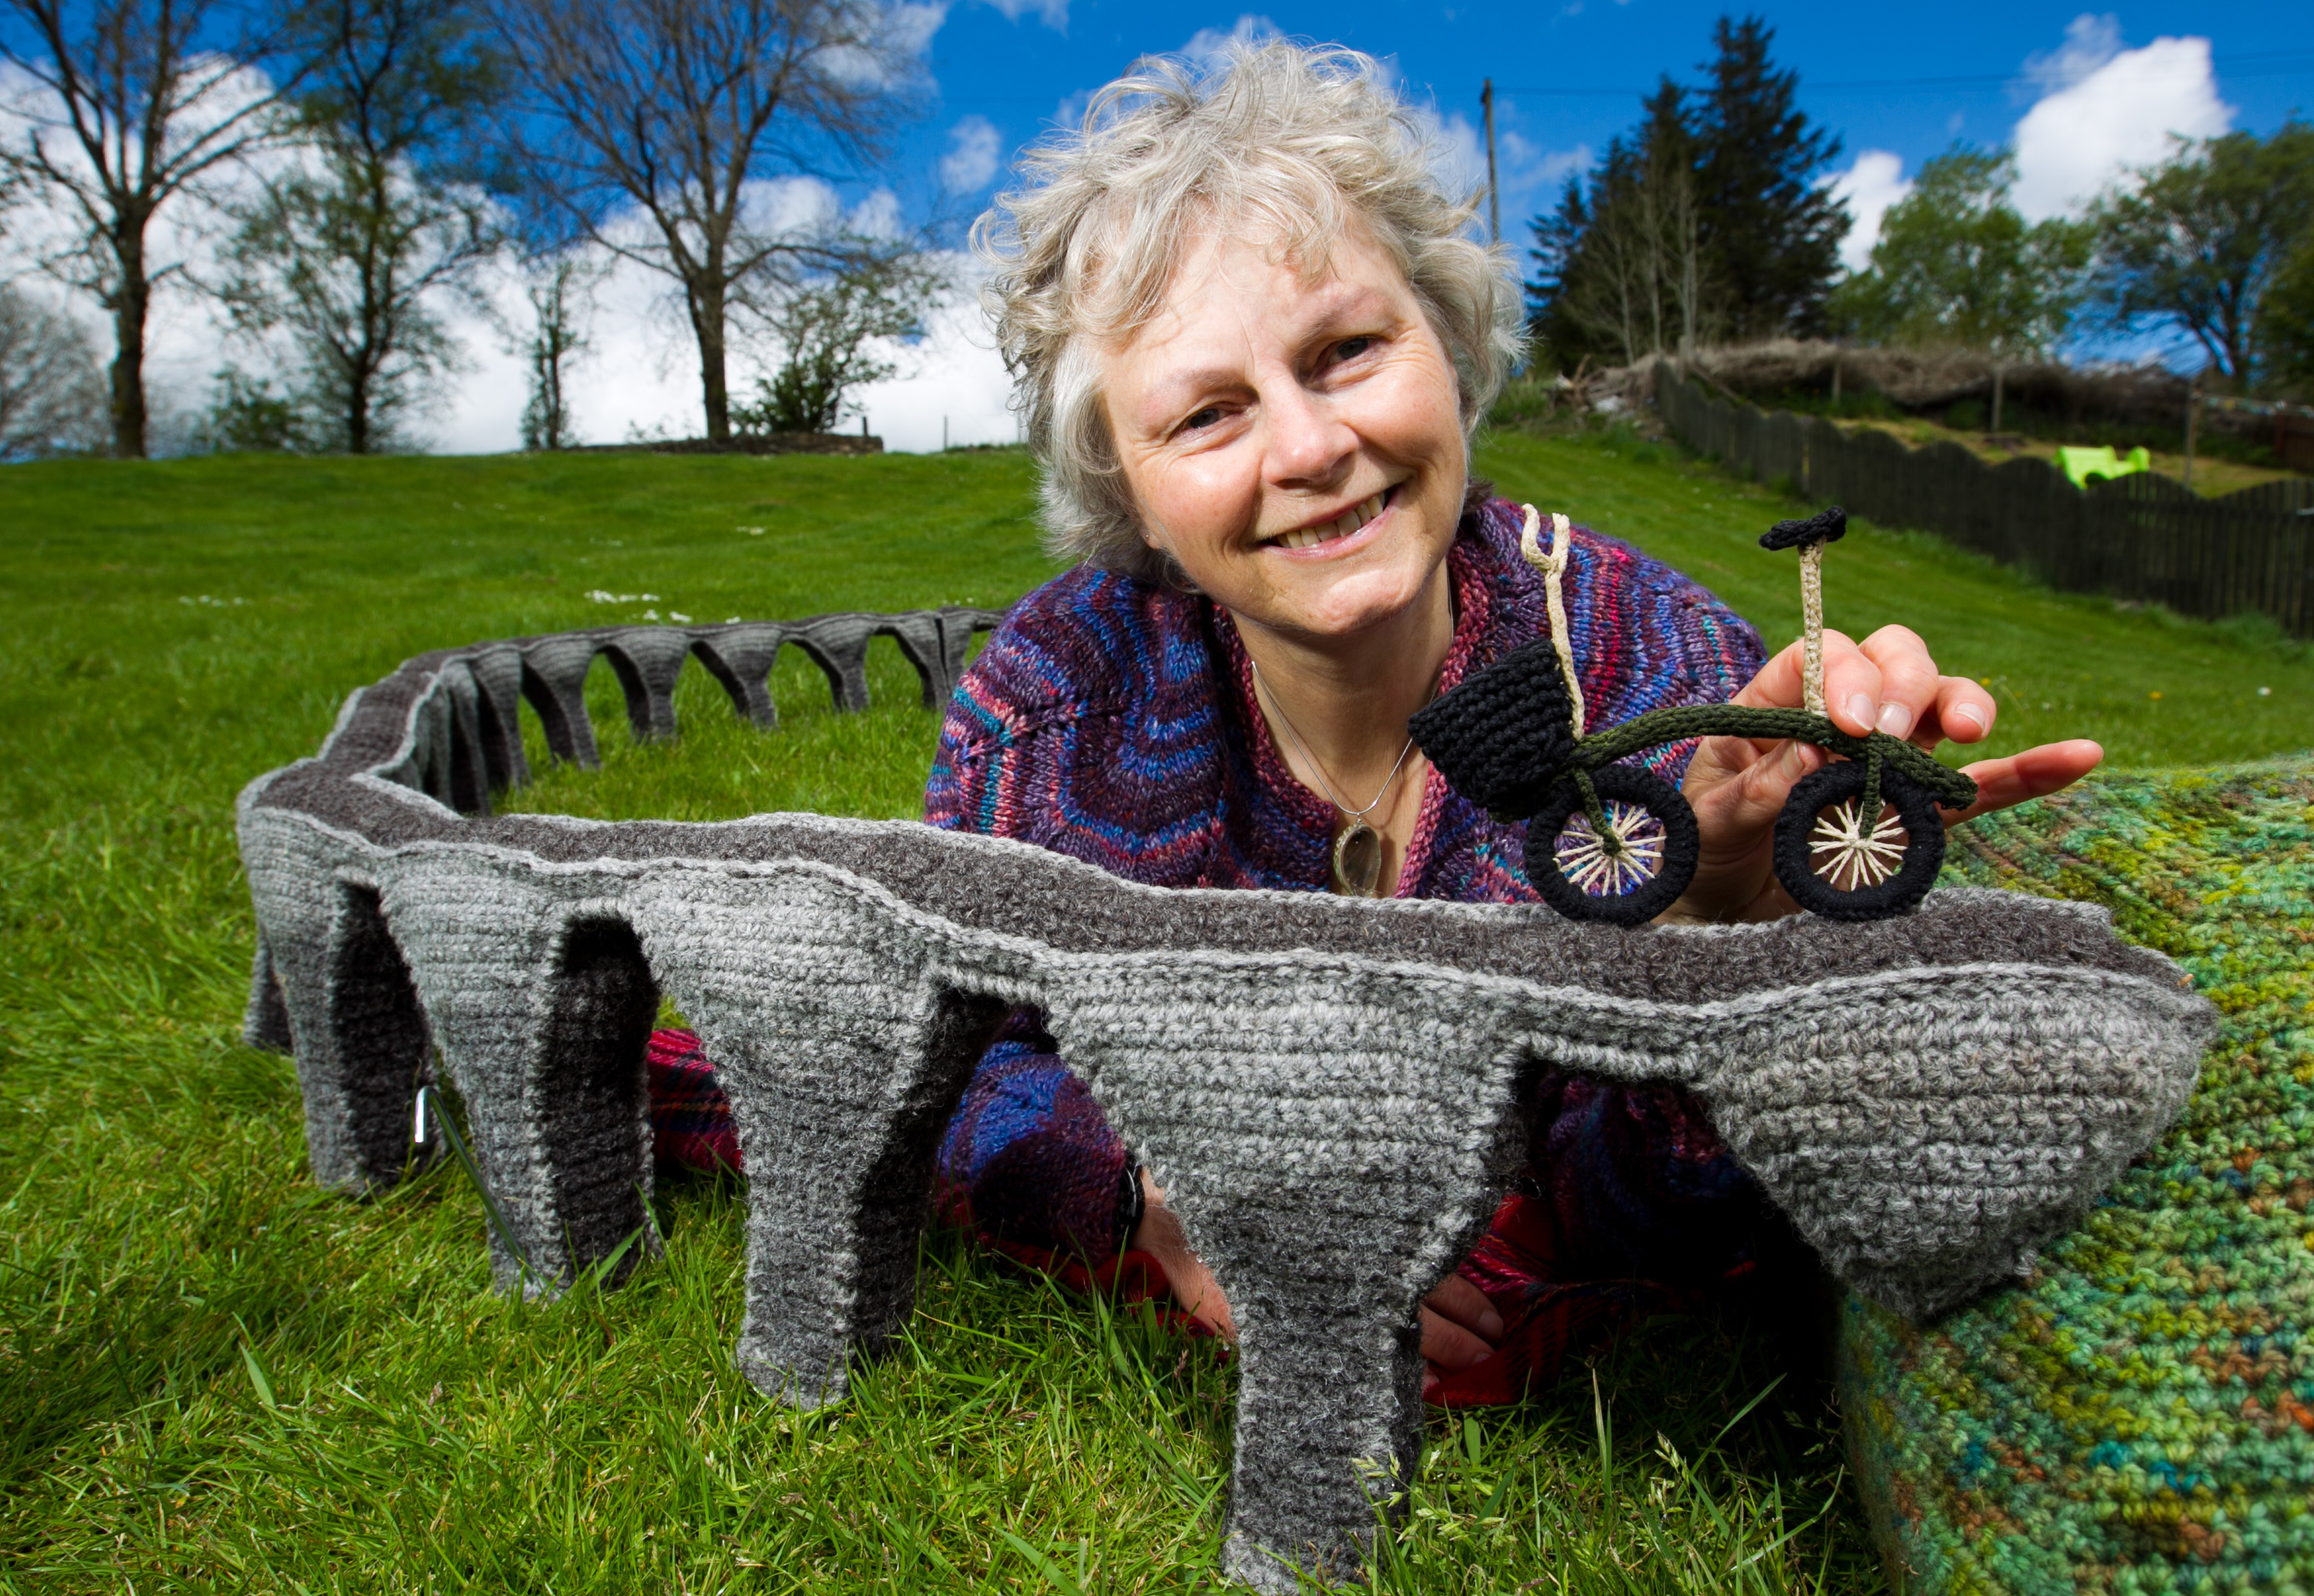 Janet Renouf, who has knitted a model of the Glenfinnan Viaduct bridge (Andrew Cawley/ Sunday Post)